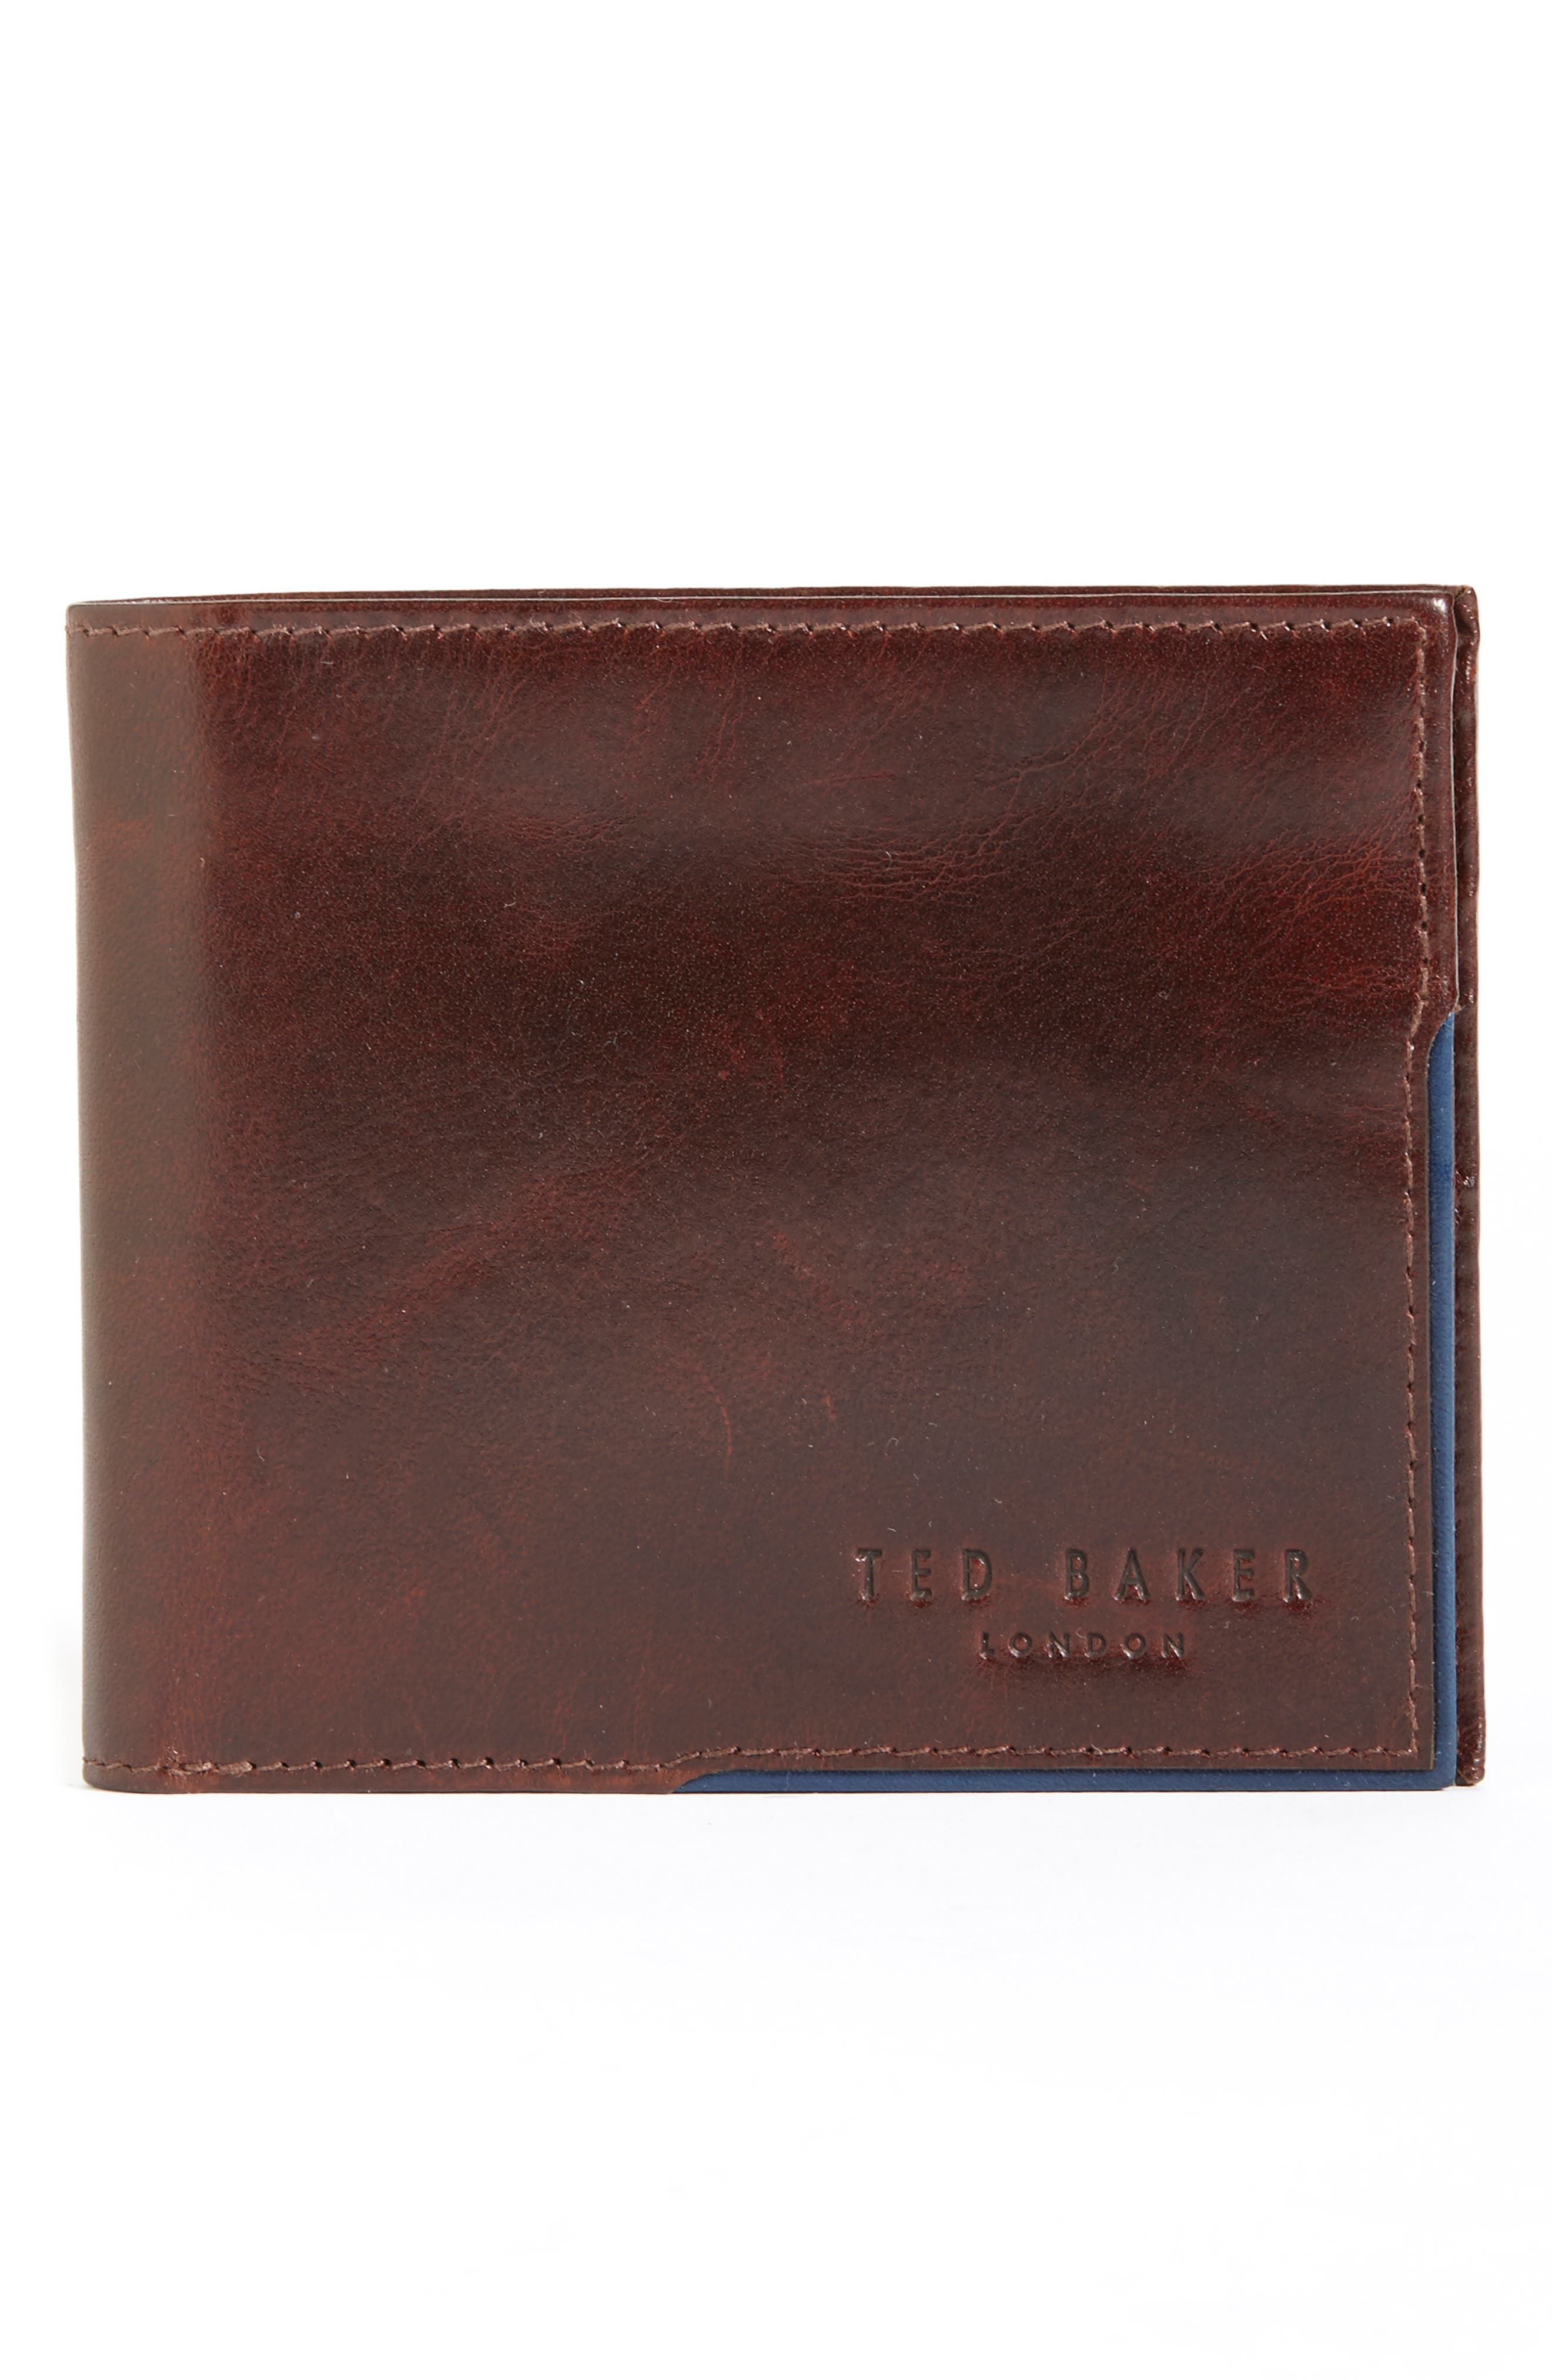 Alternate Image 1 Selected - Ted Baker London Carouse Leather Wallet